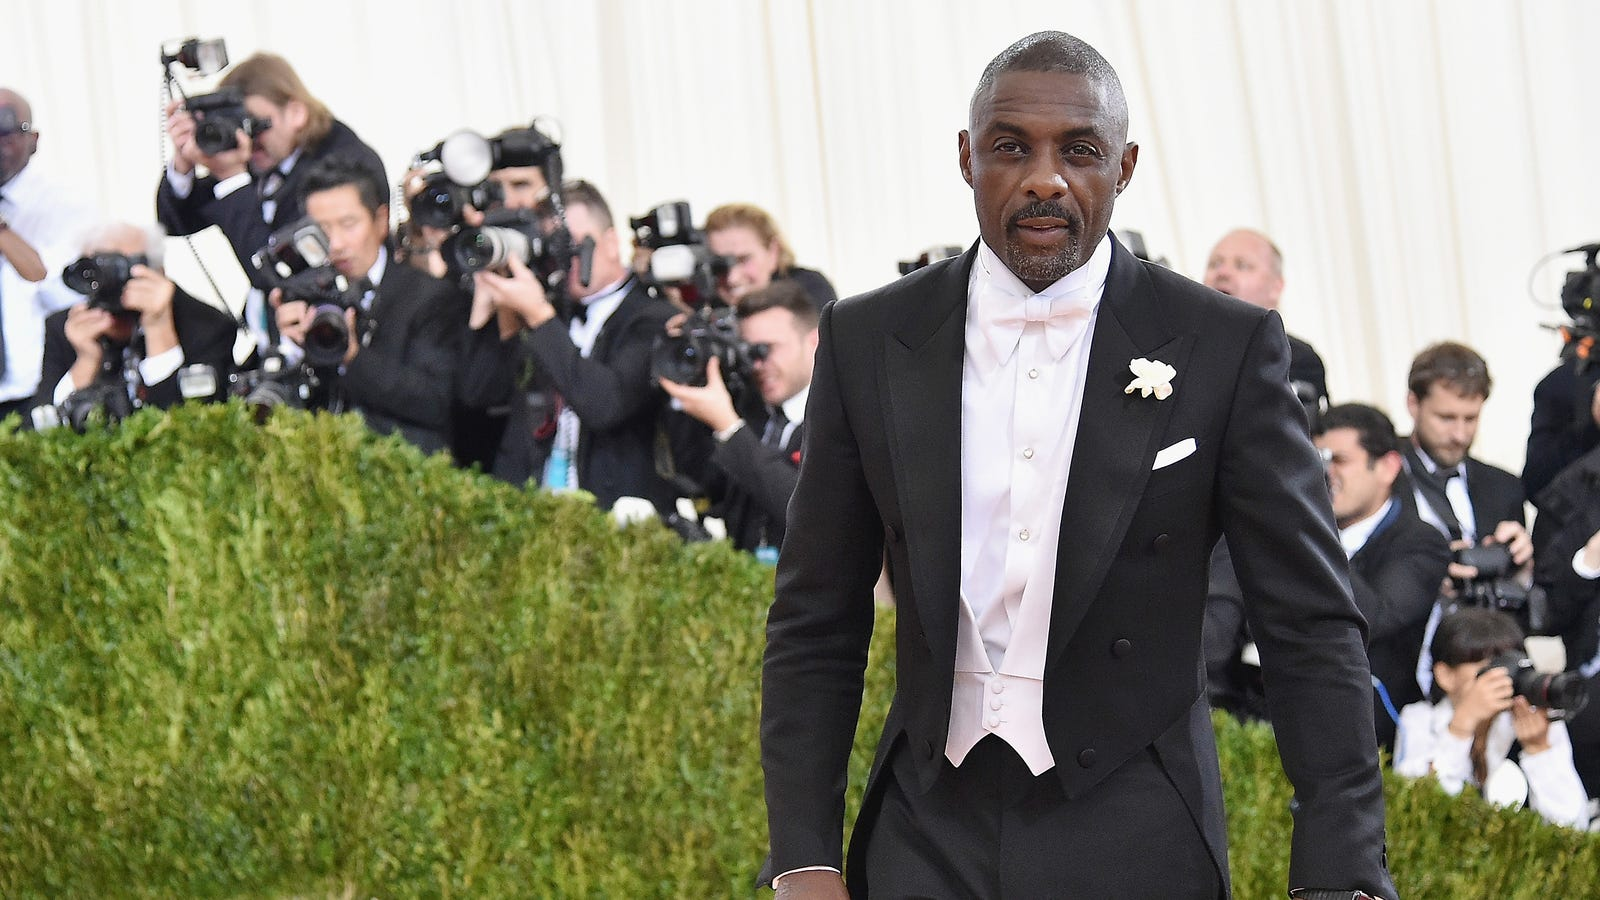 Idris Elba is People's Sexiest Man Alive, so can he please play James Bond now?